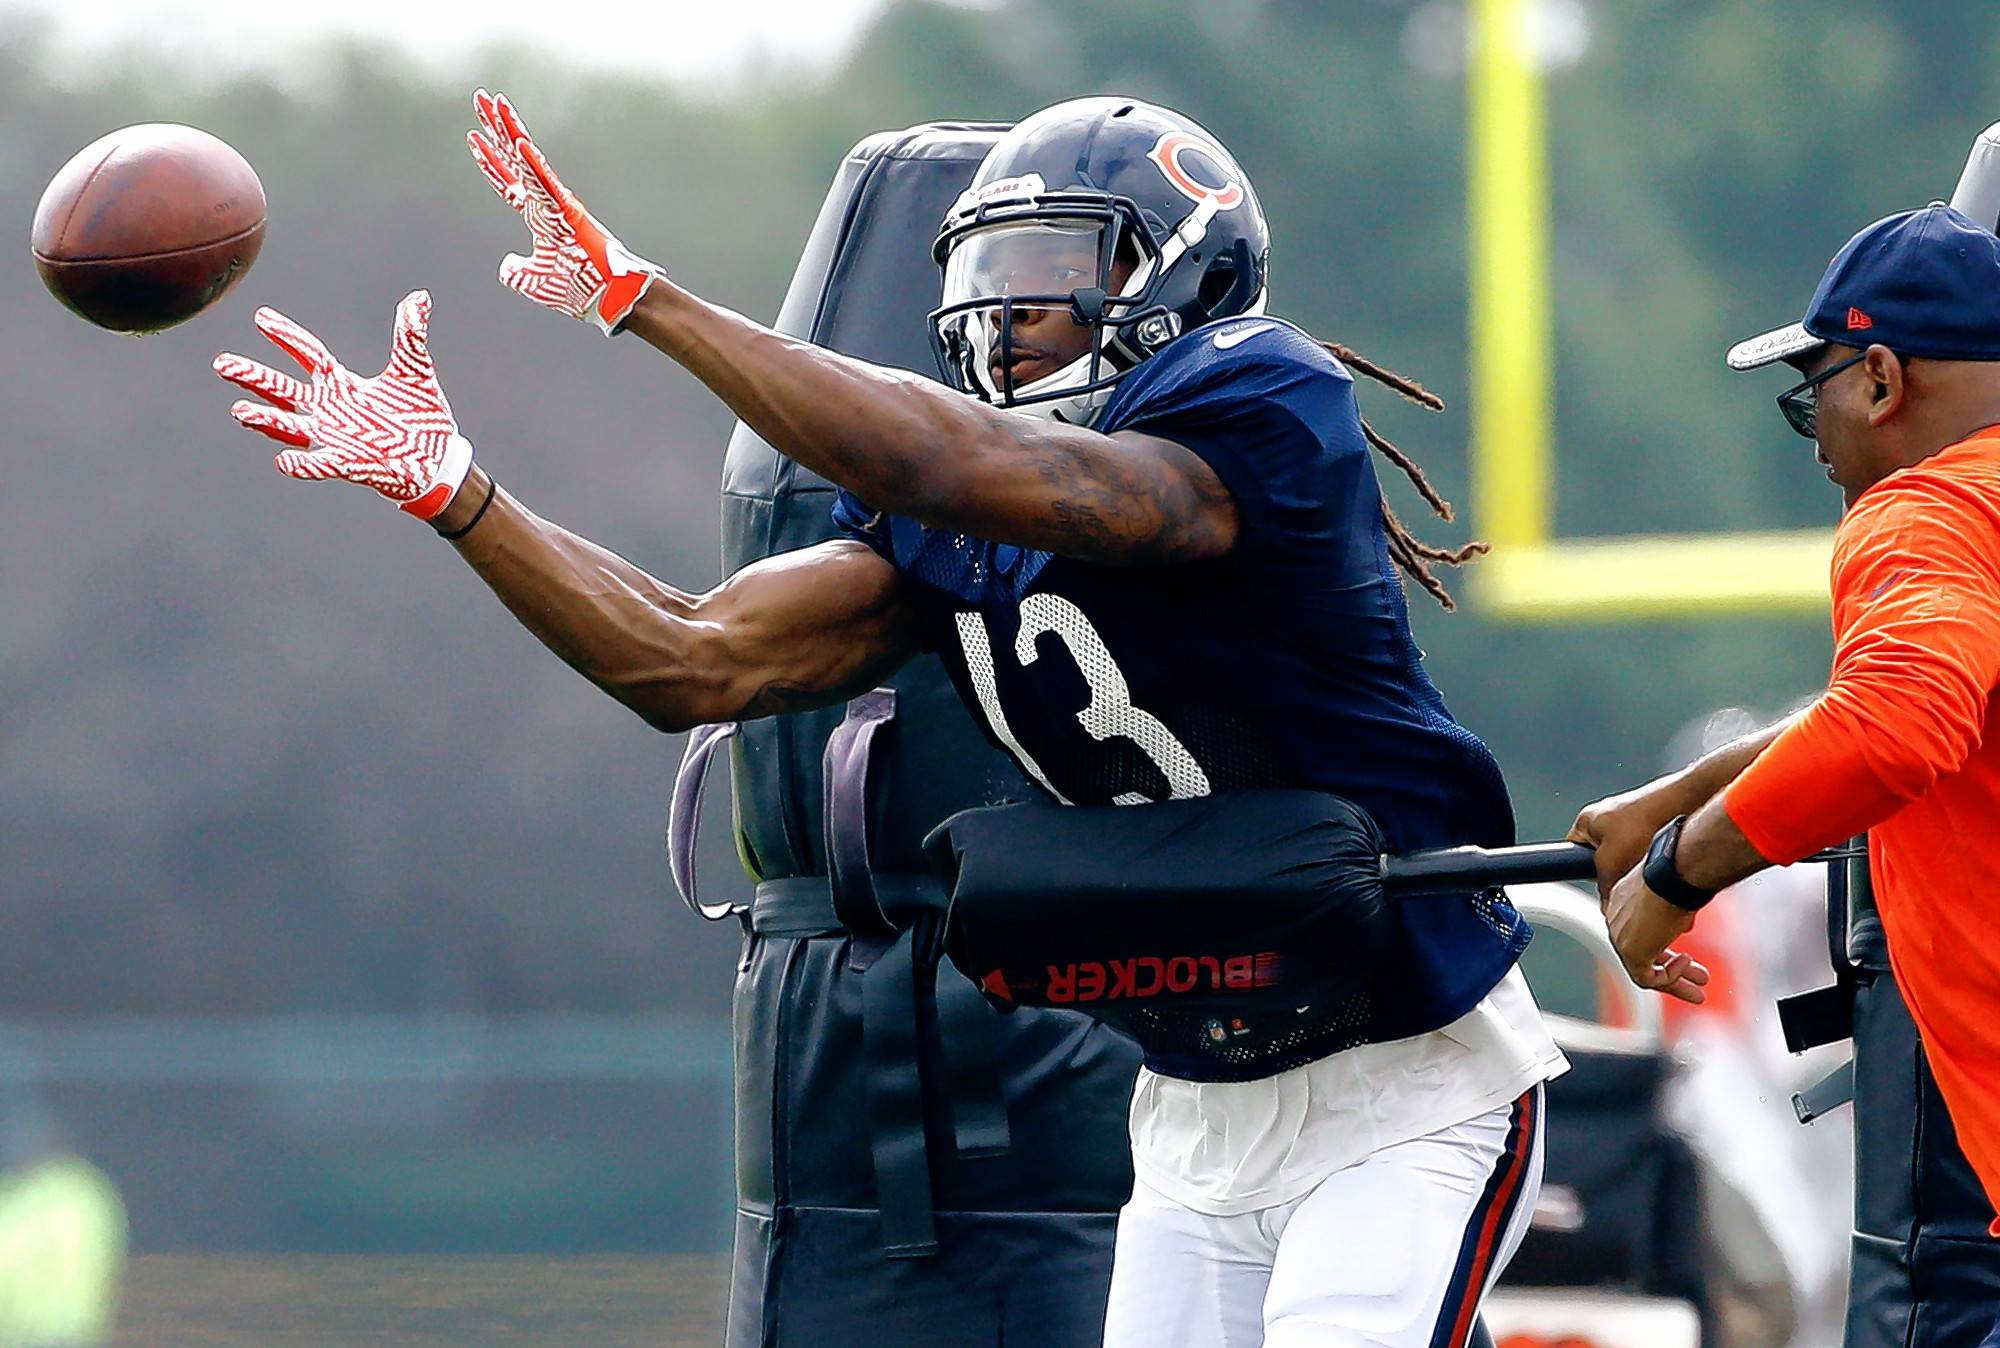 Chicago Bears head coach John Fox trimmed his roster to 75 players on Tuesday. NFL teams have until Saturday to finalize their 53-man roster.